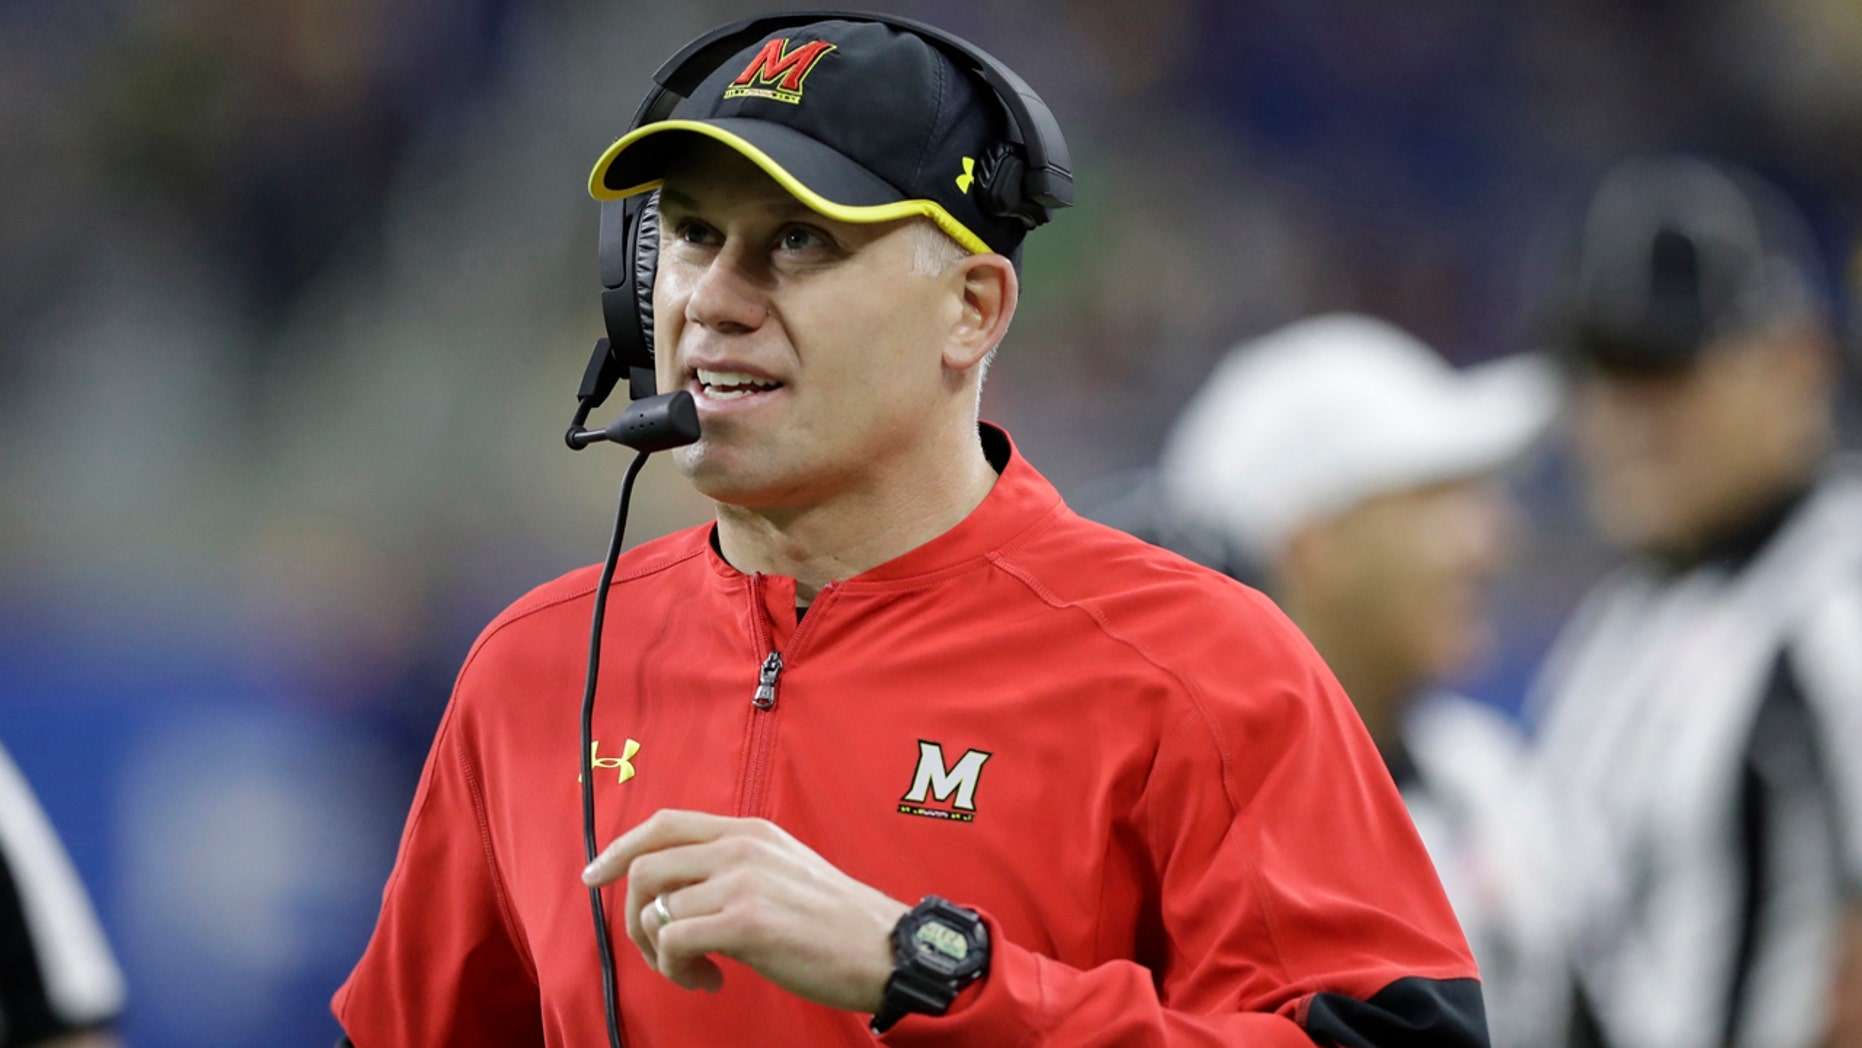 Maryland head coach DJ Durkin.